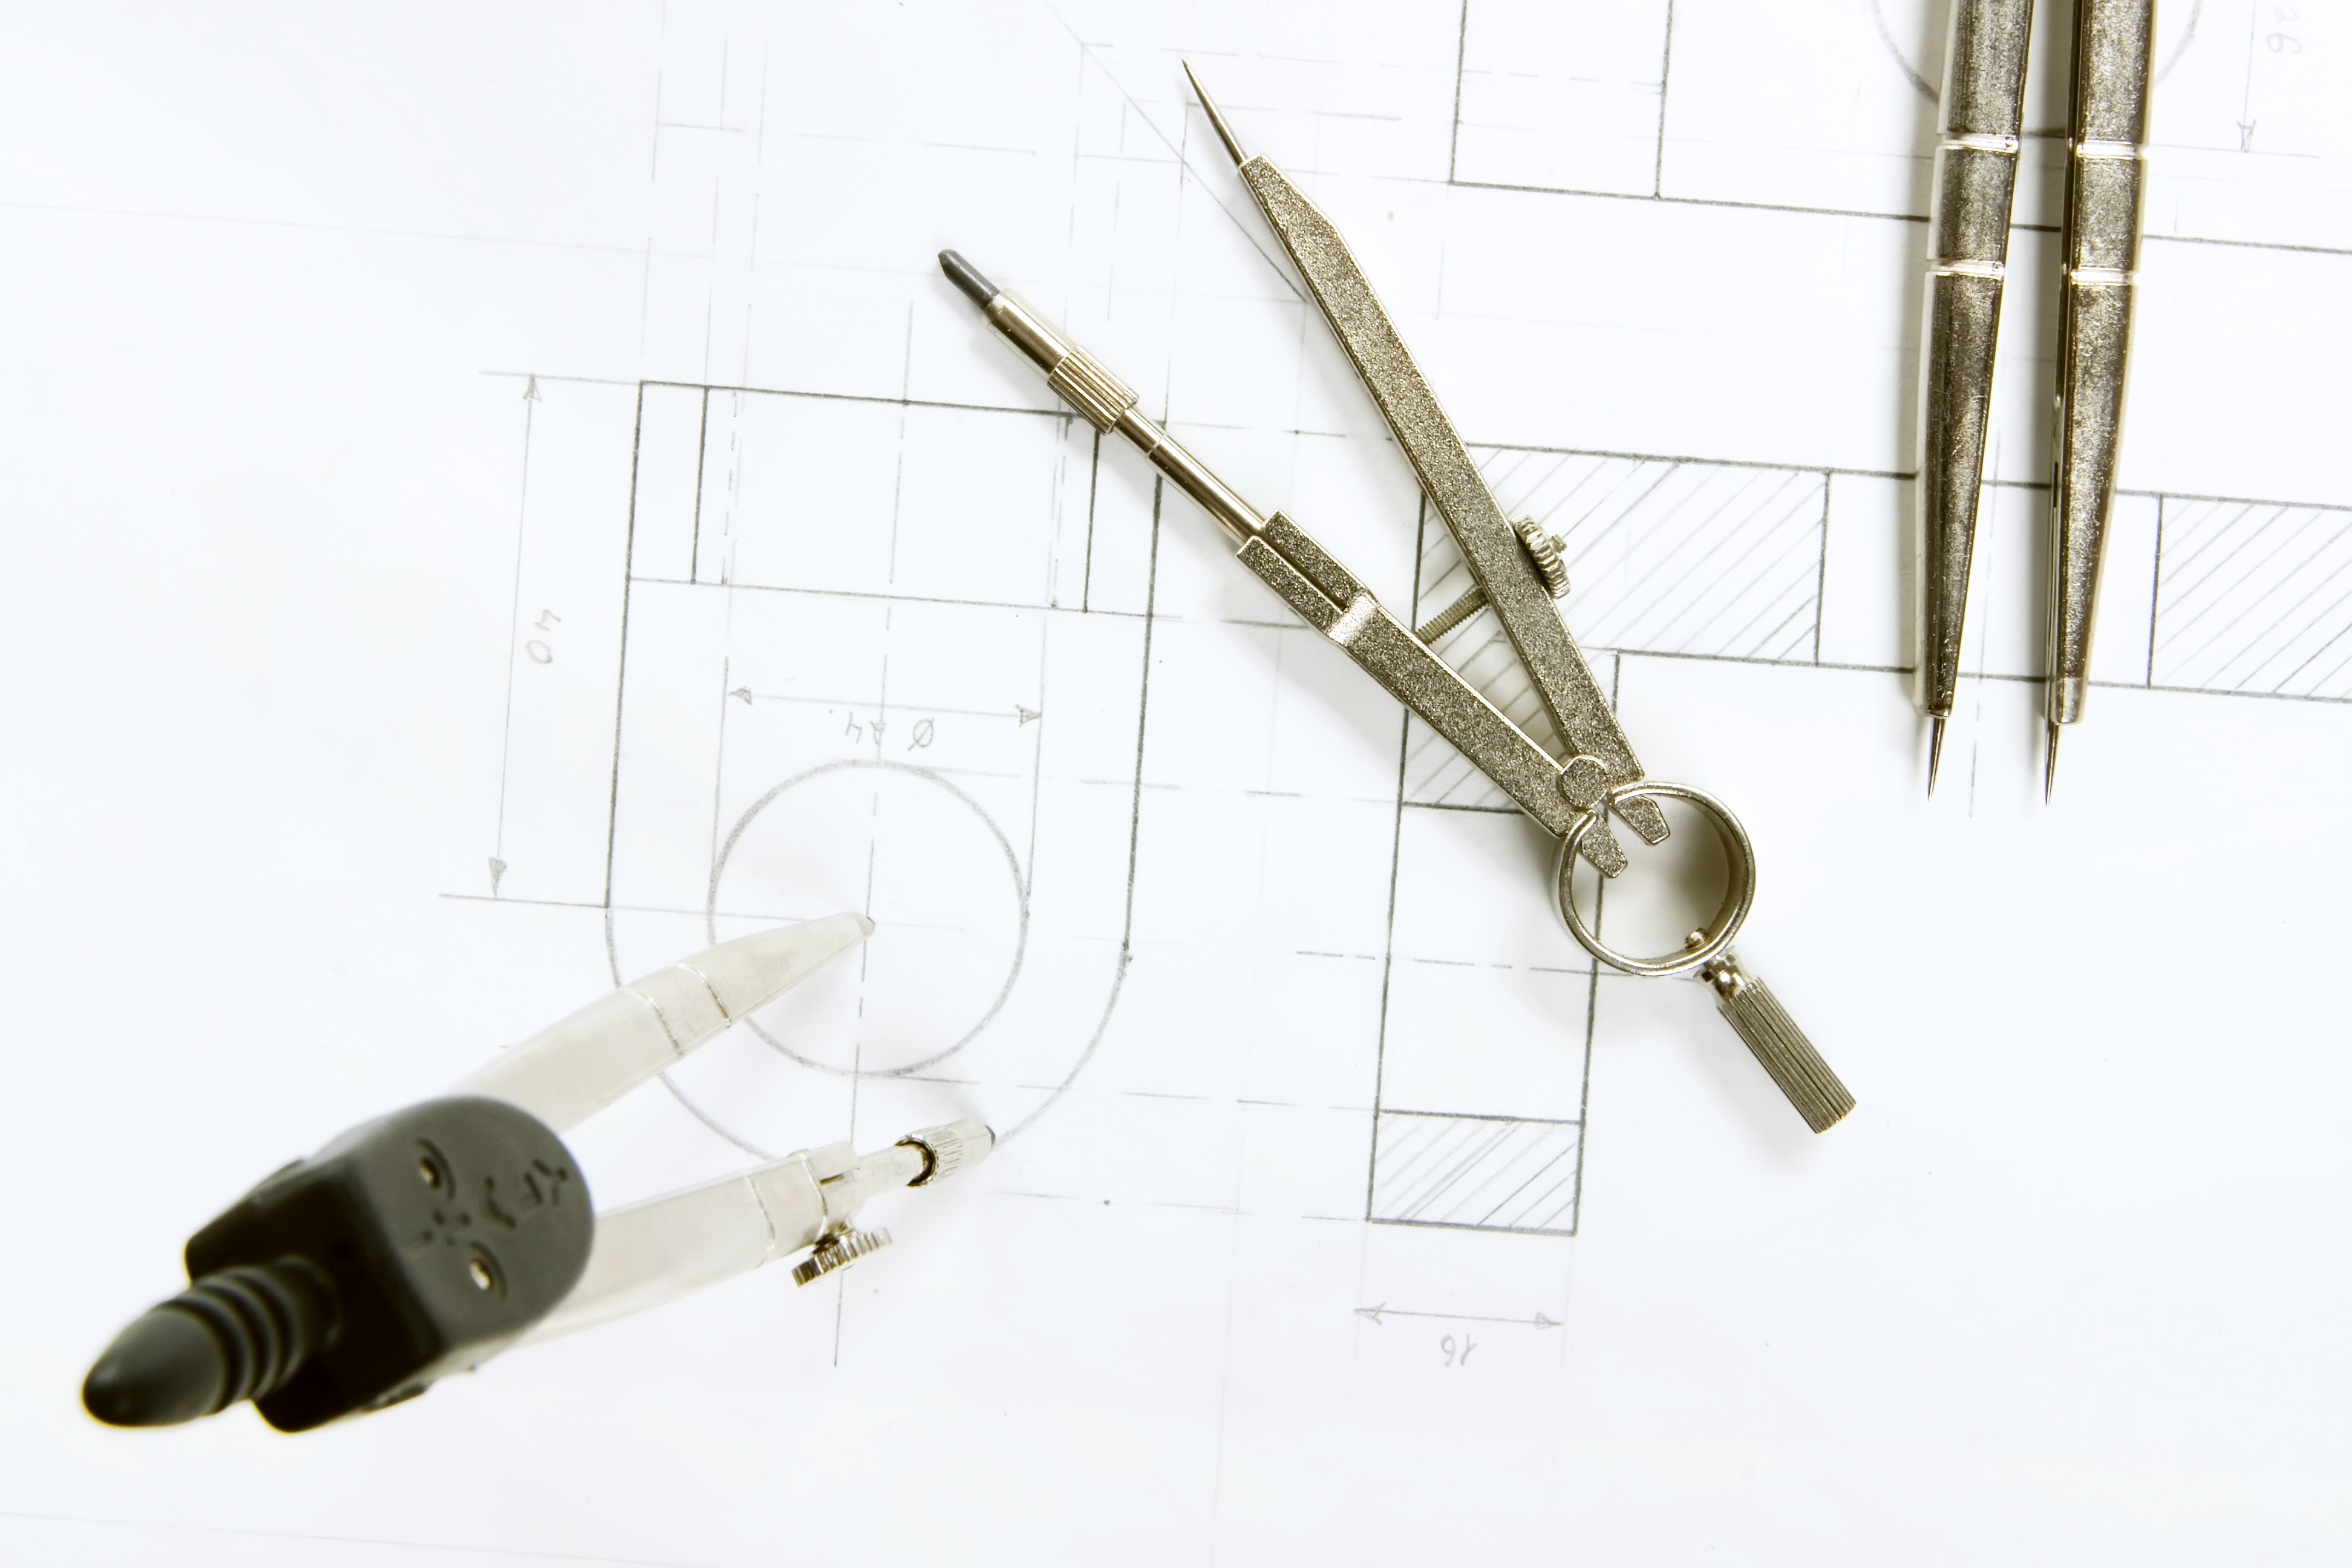 Drawing Compasses, Project, Plan, Paper, School, HQ Photo